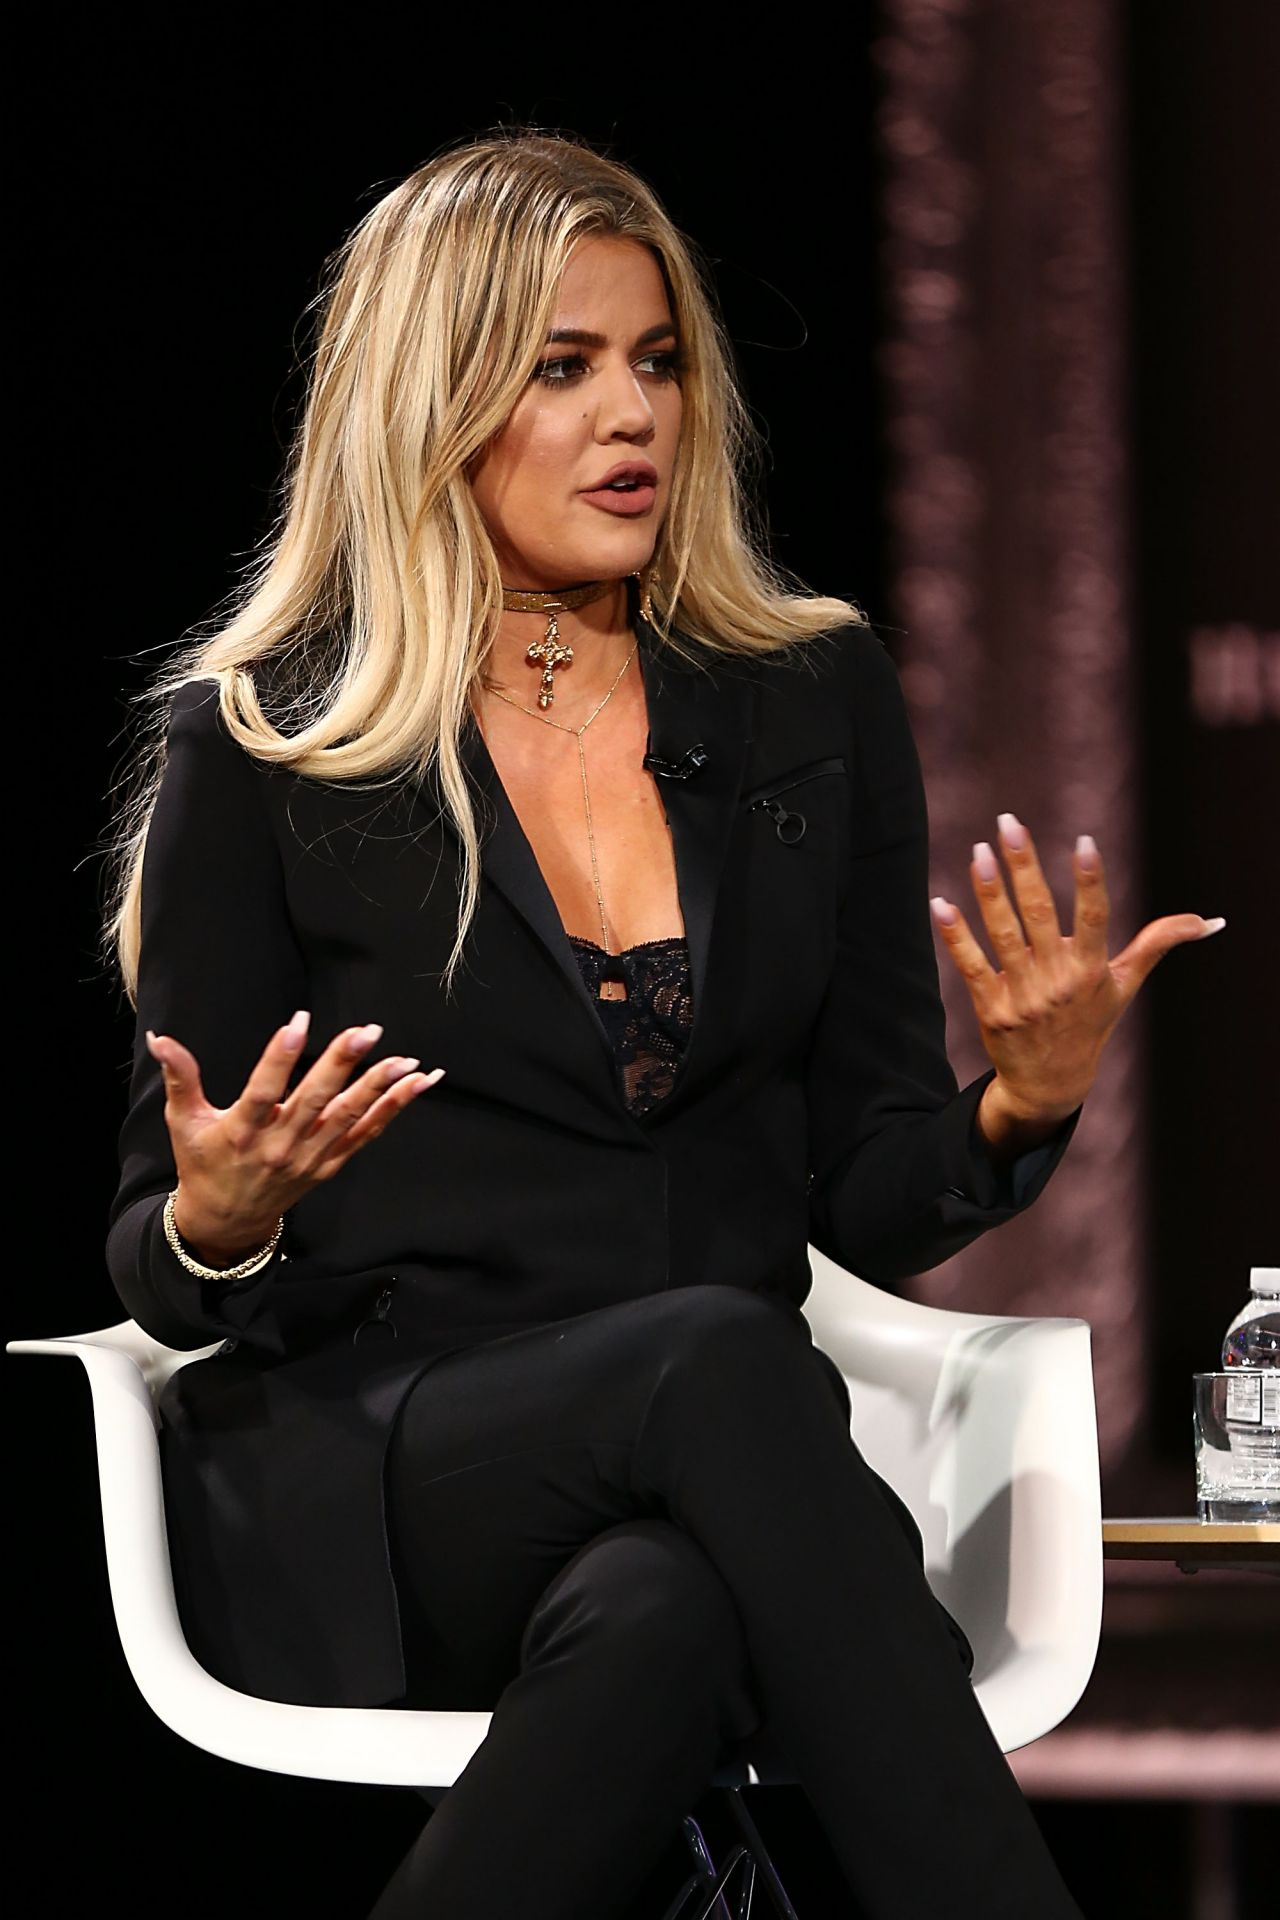 Khloe Kardashian Latest Photos - CelebMafia